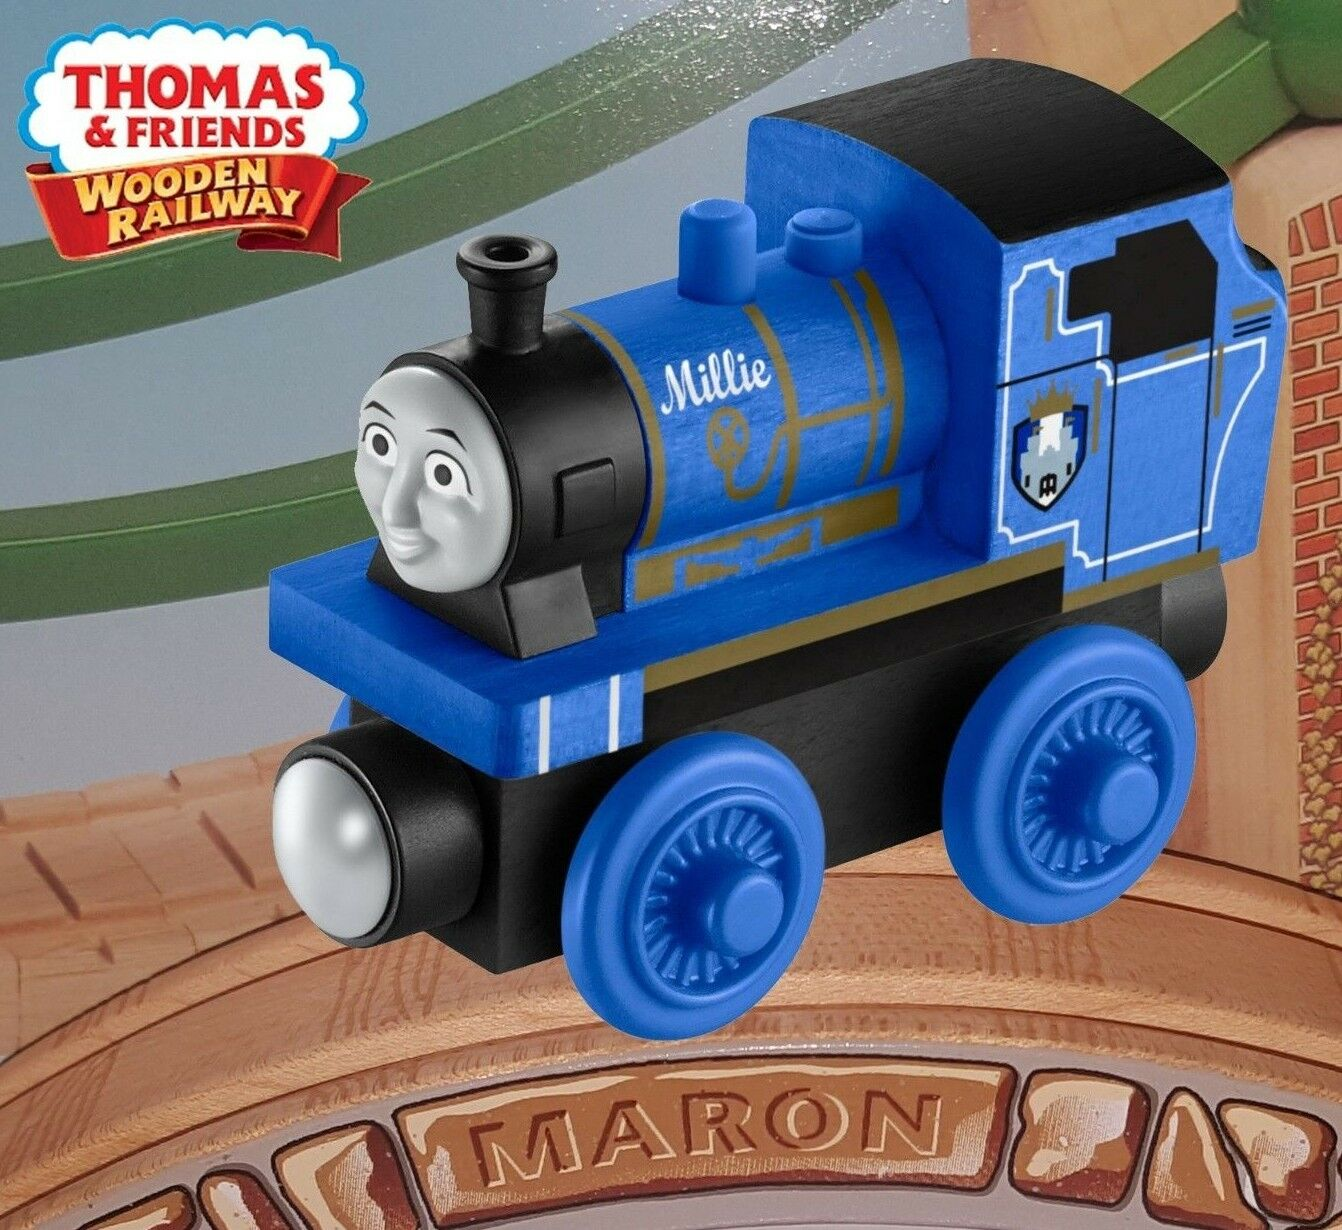 THOMAS & FRIENDS WOODEN RAILWAY     MILLIE  Y4486  Extremely hard to find d1482a